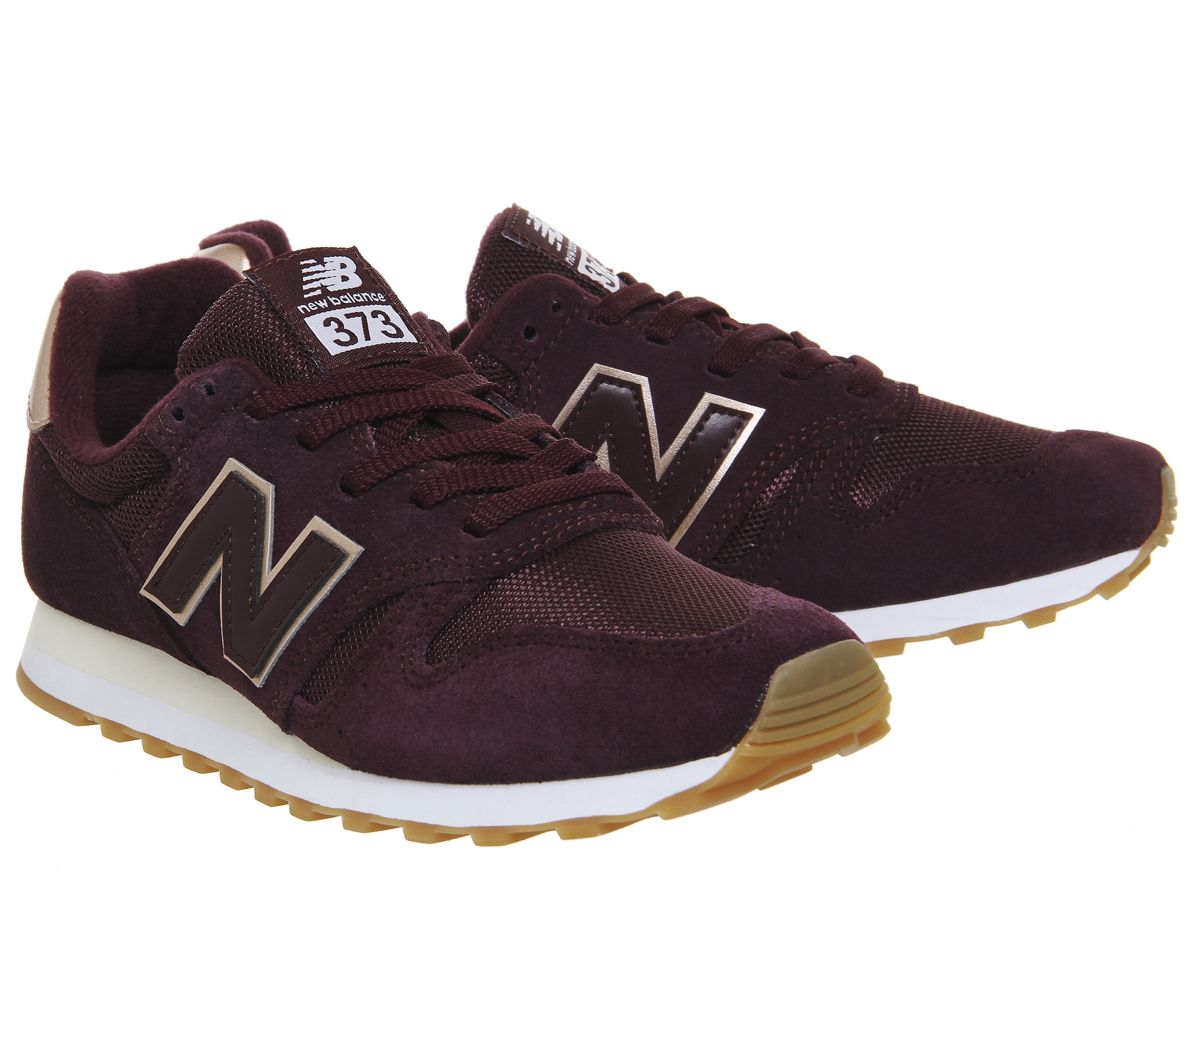 cheap for discount ae85f c3ede New Balance 373 burgundy   rose gold size 5, Office